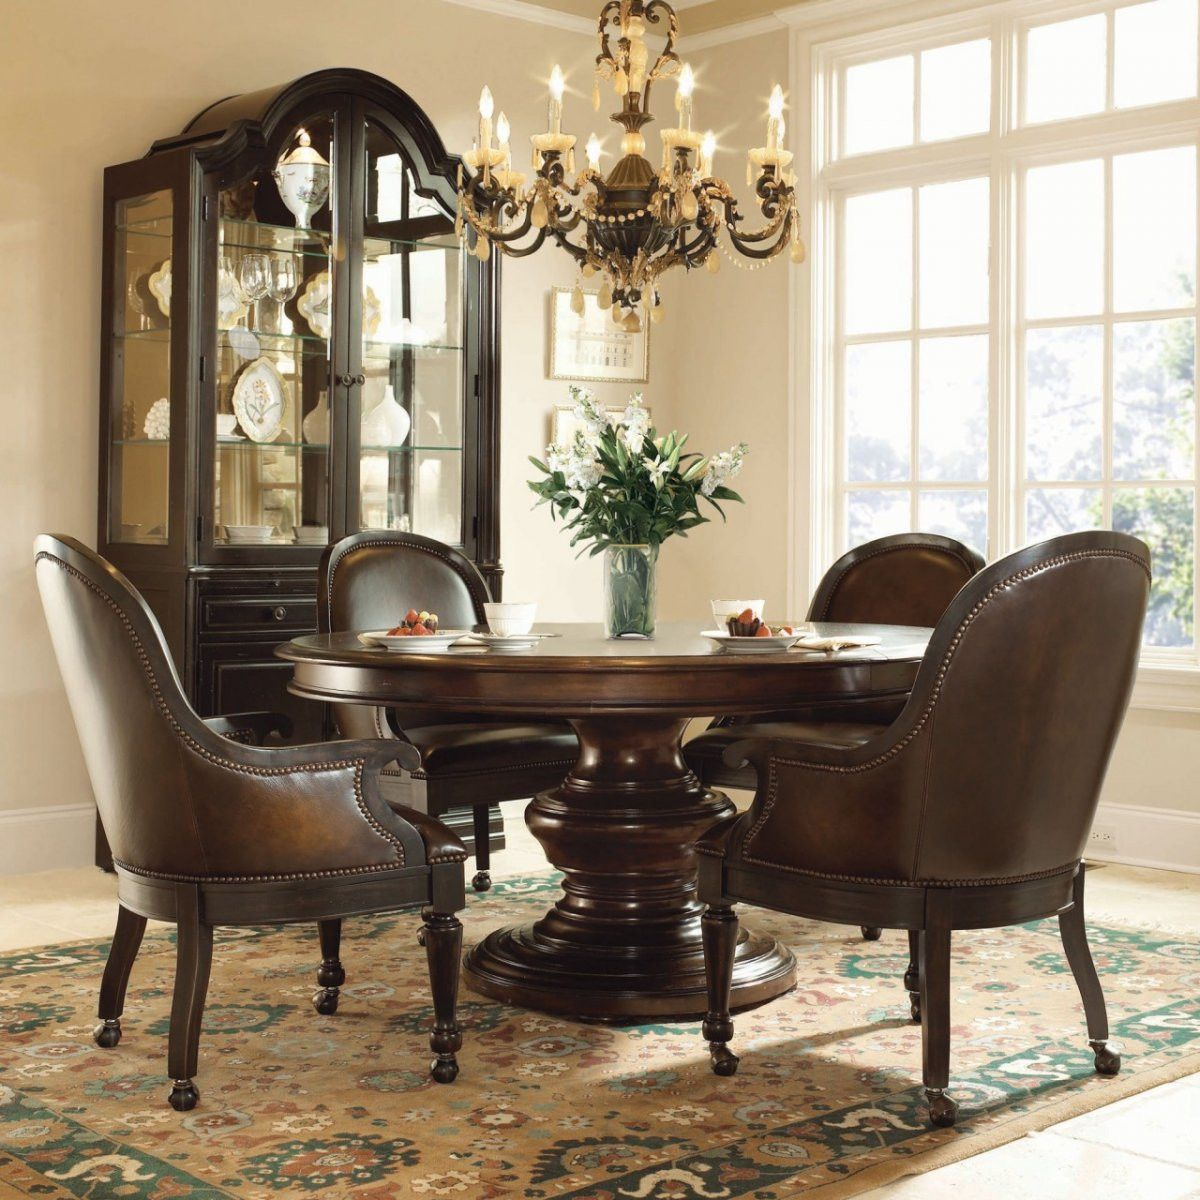 2018 Dining Room Sets With Chairs On Casters  Modern Style Delectable Dining Room Chairs On Wheels Inspiration Design